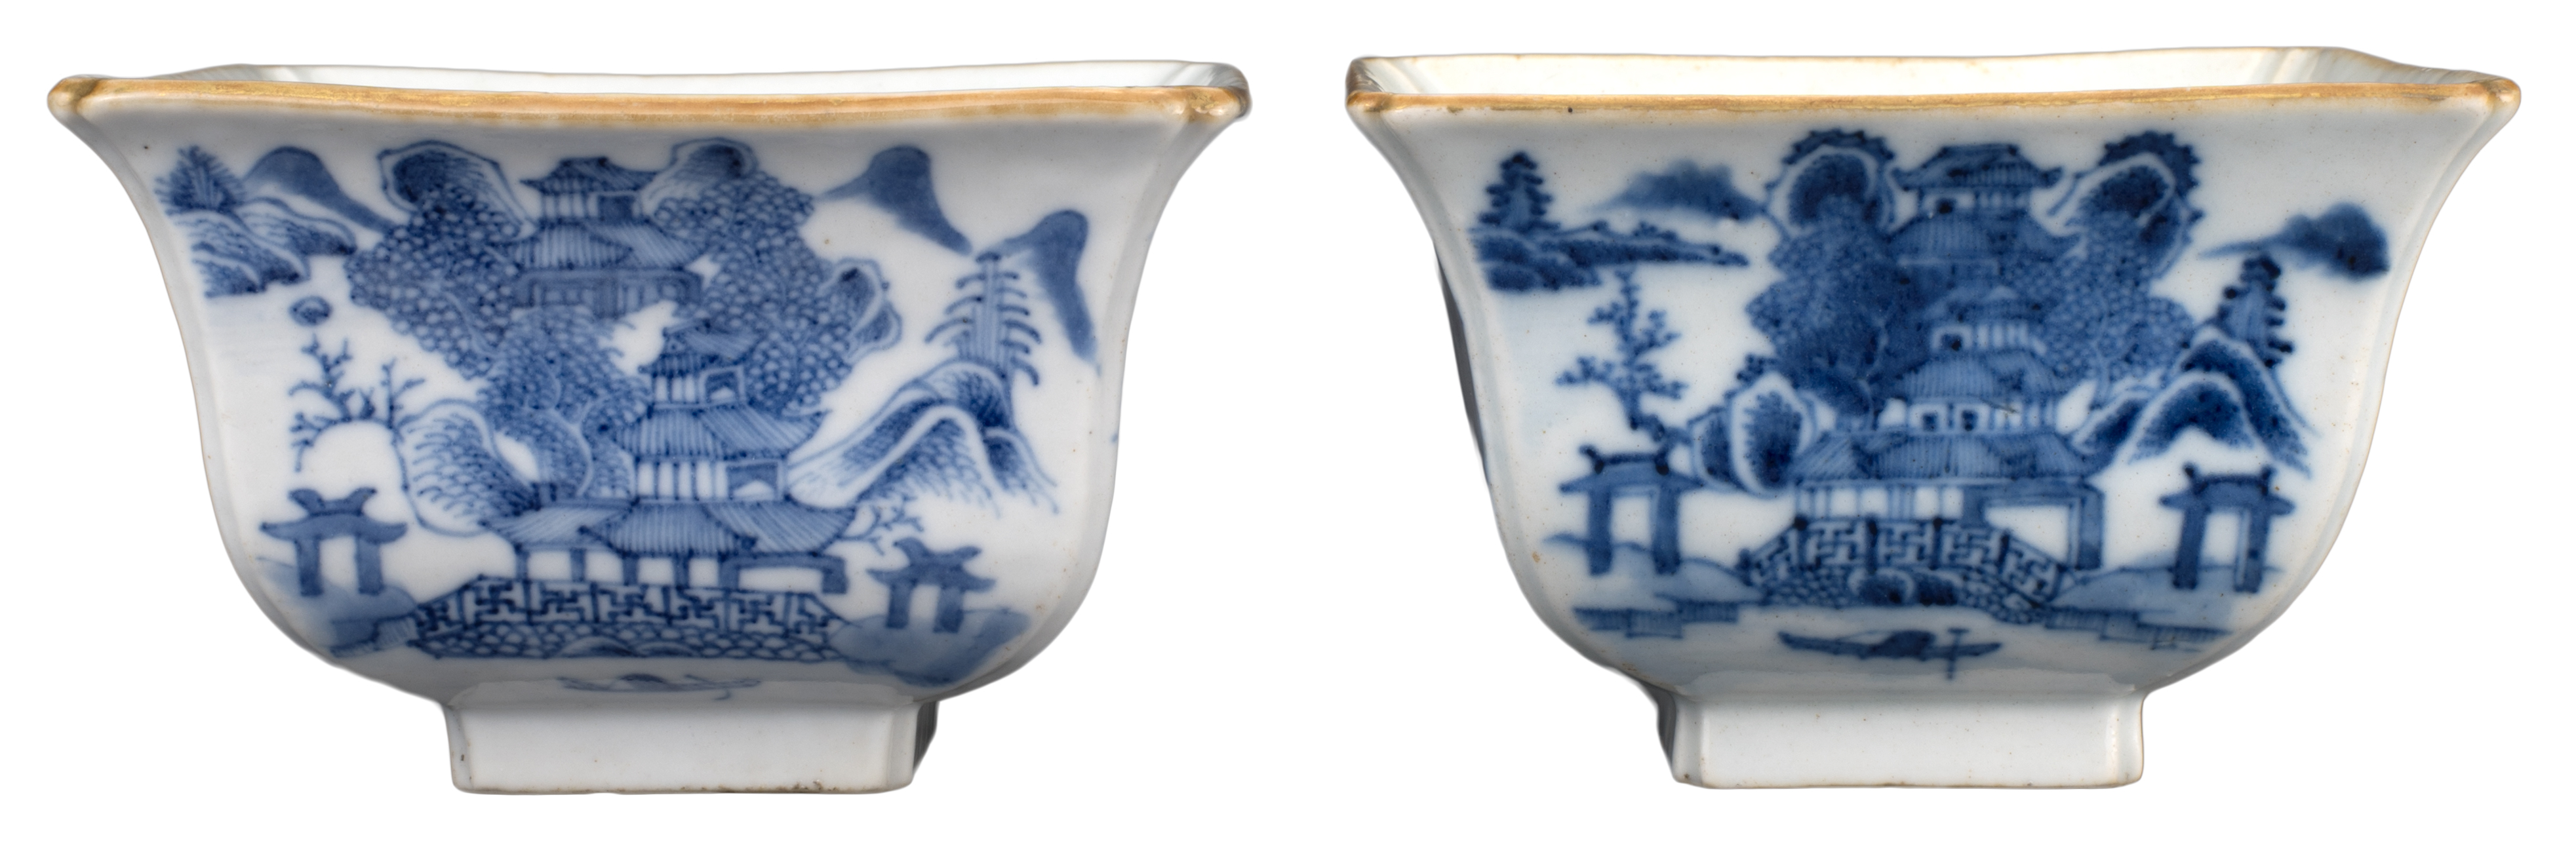 PAIR OF CHINESE BLUE AND WHITE PORCELAIN BOWLS, DAOGUANG MARK AND PERIOD, 19th CENTURY